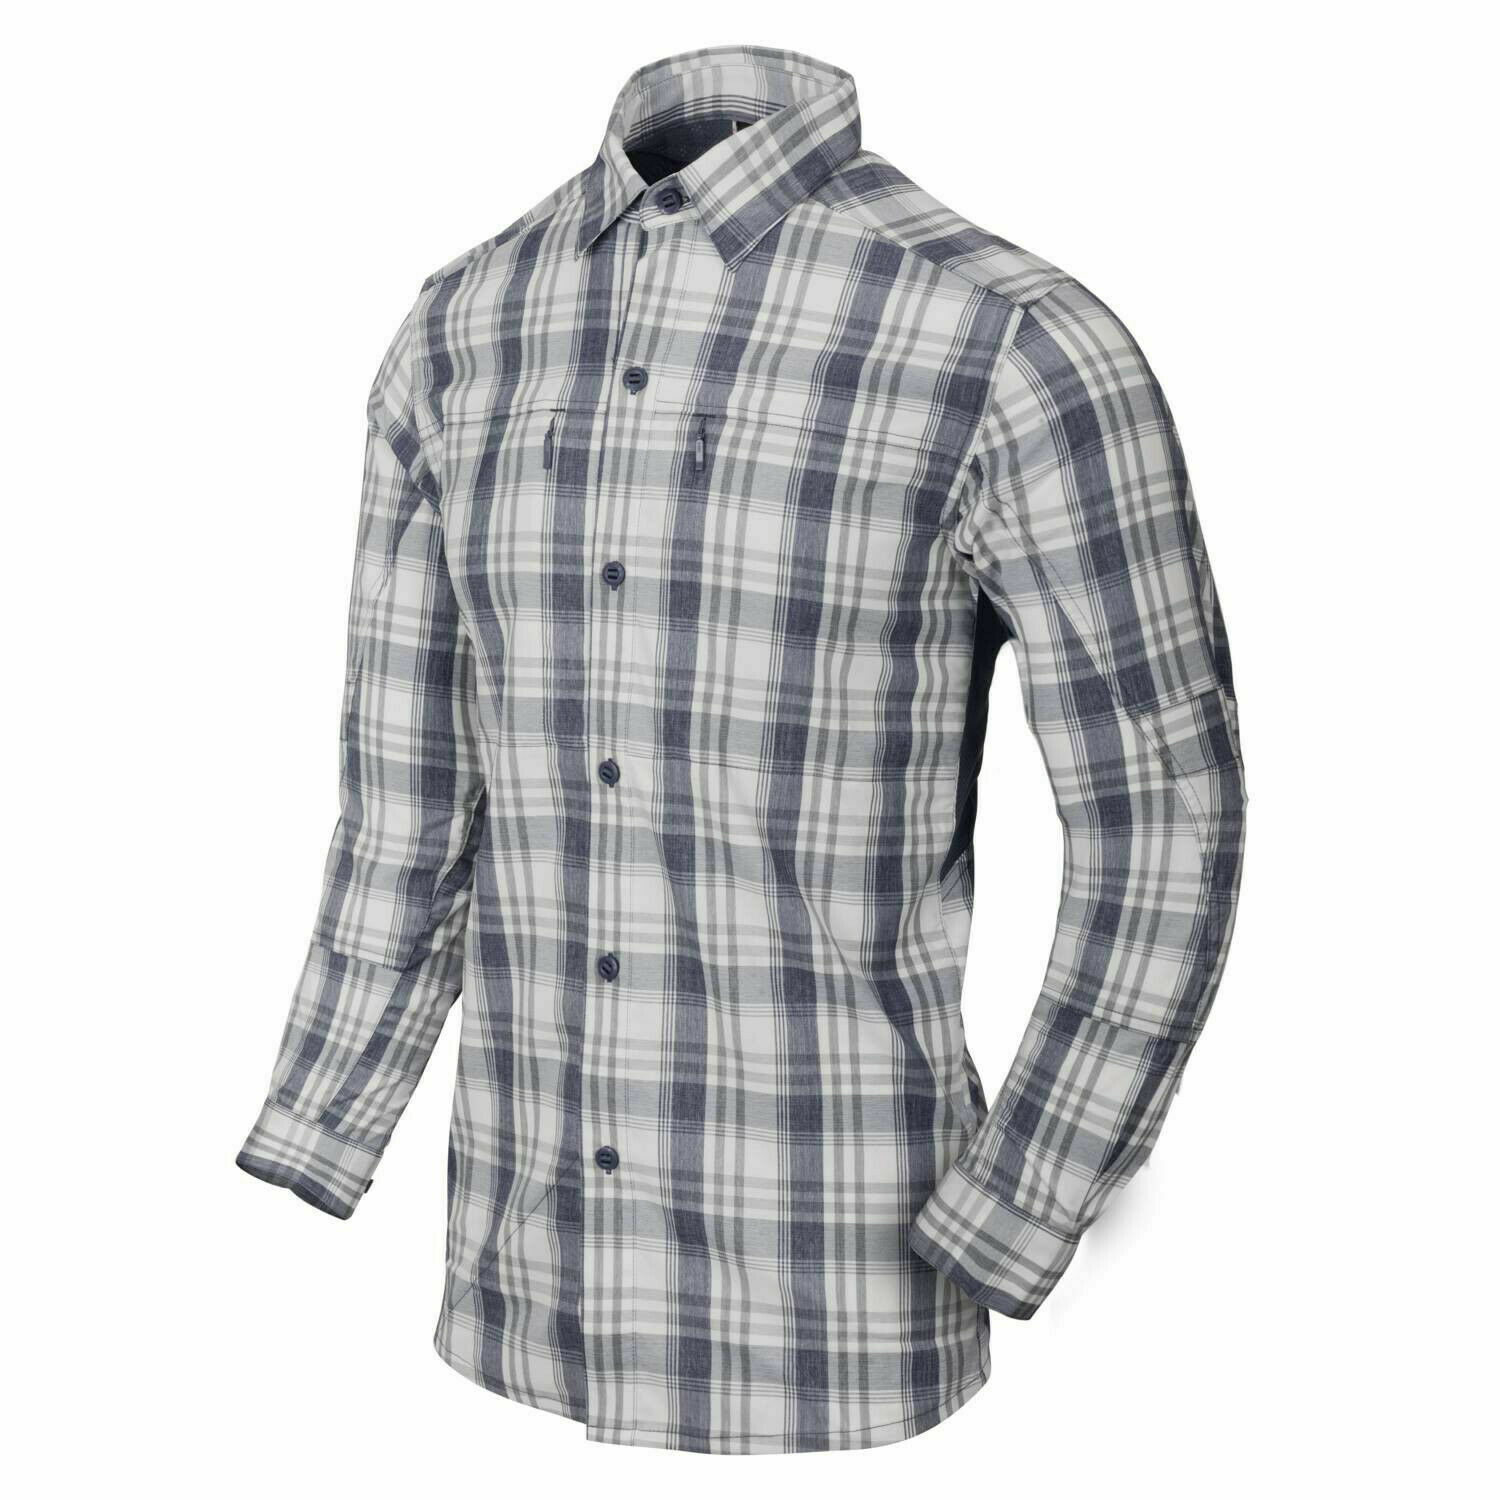 Plaid Fatto Ai Ferri molte concessioni-shirtindigo trip helikontex nylon blend